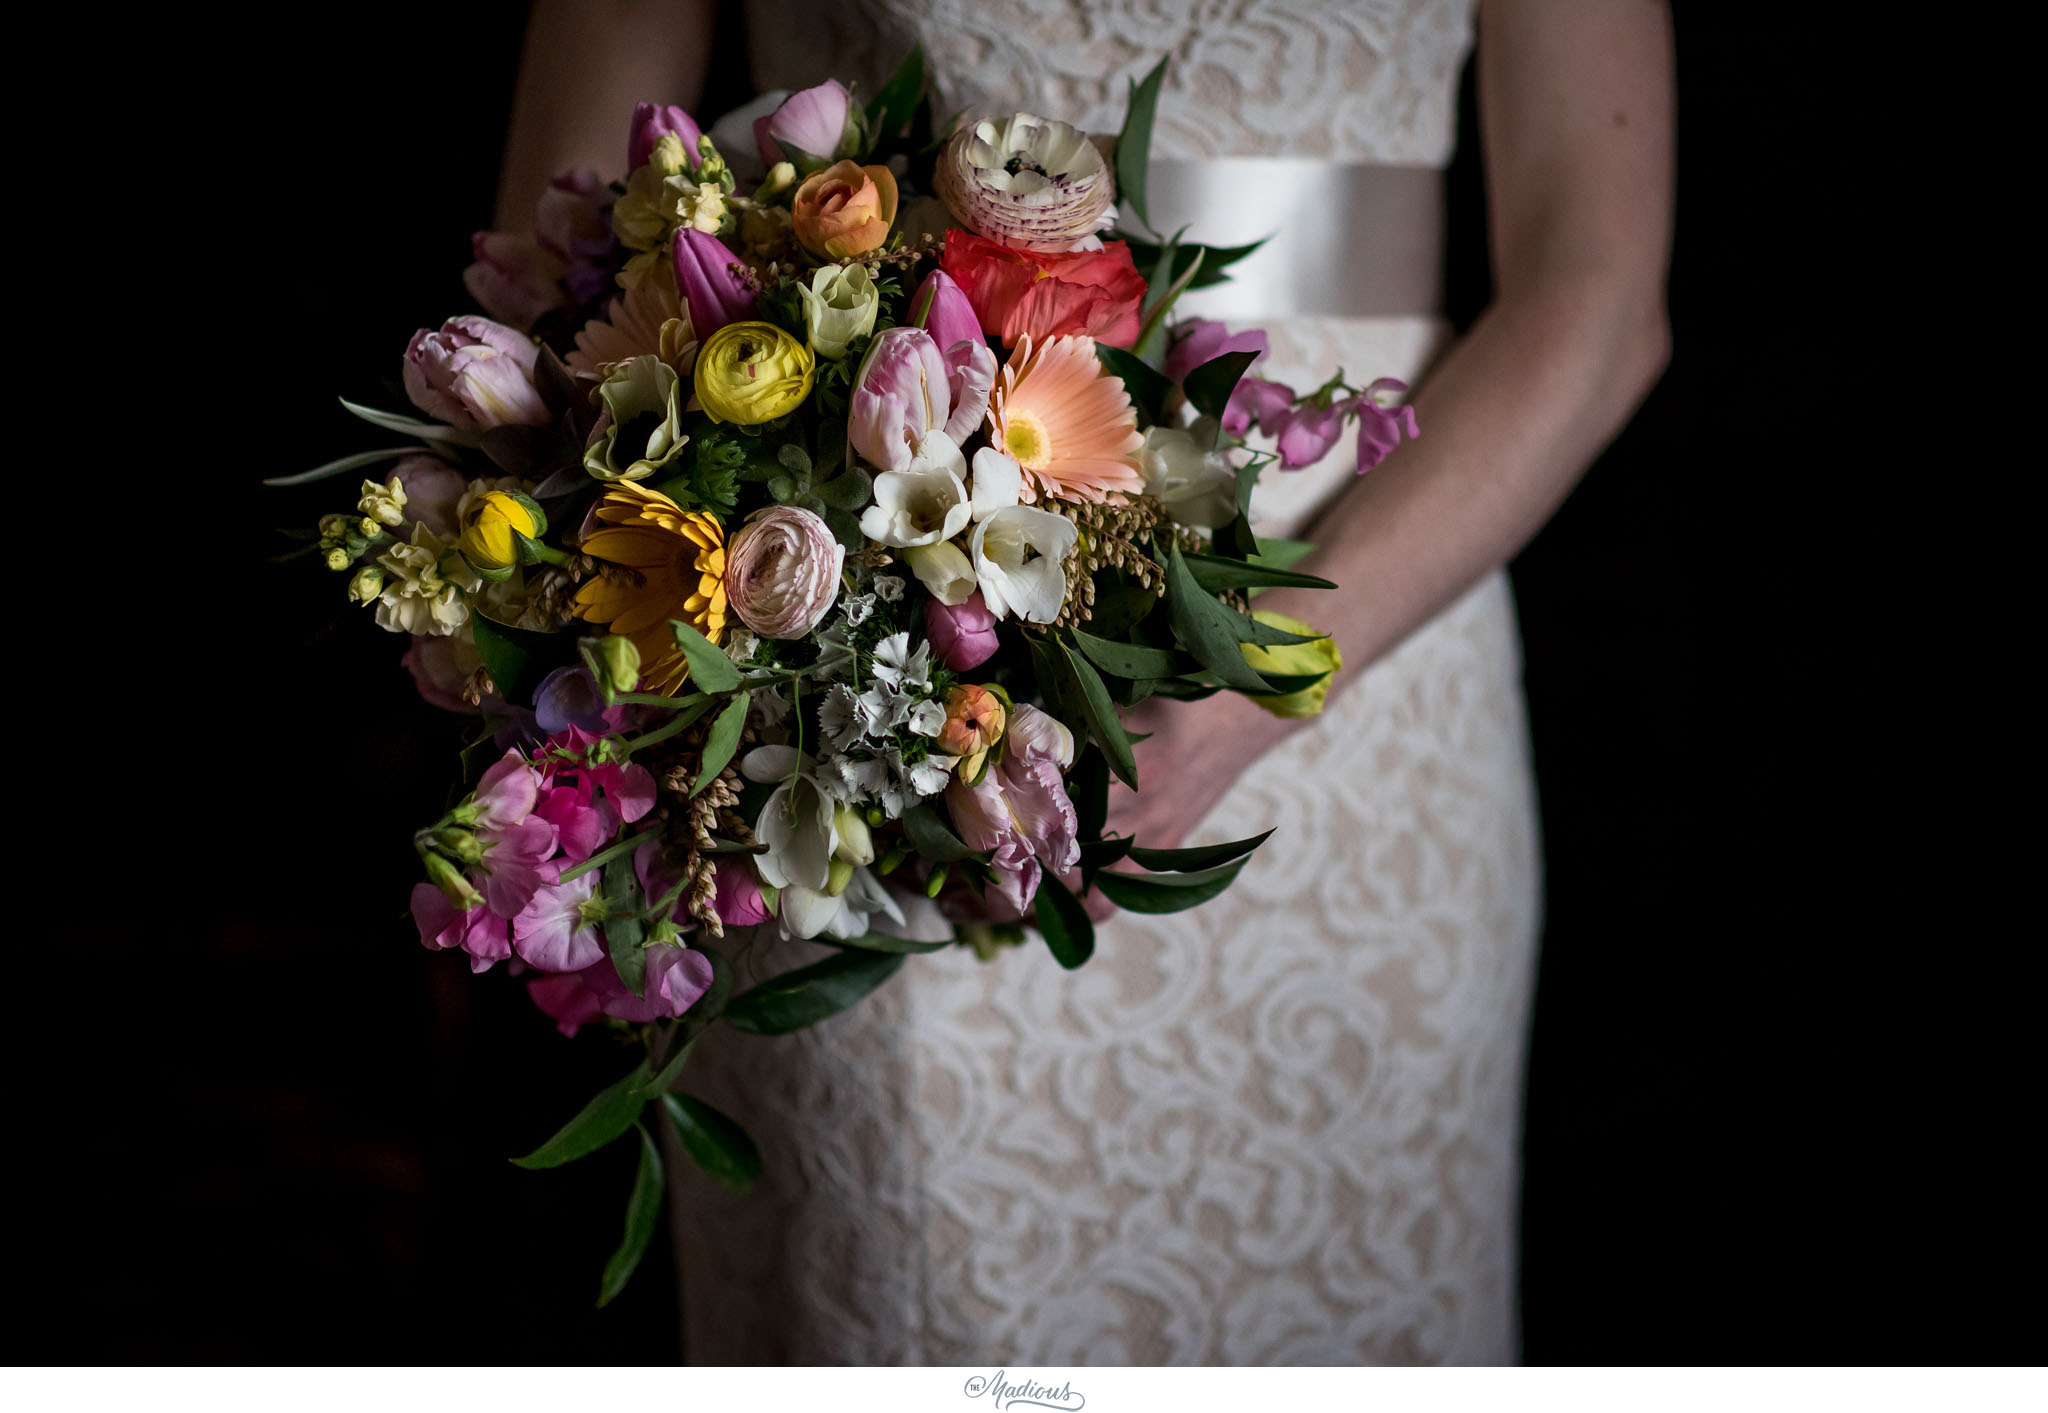 Local bouquet by   Local Color Flowers   including ranunculus, tulips, anemones, peonies, gerbera daisies, curly willow. Photo by   The Madious